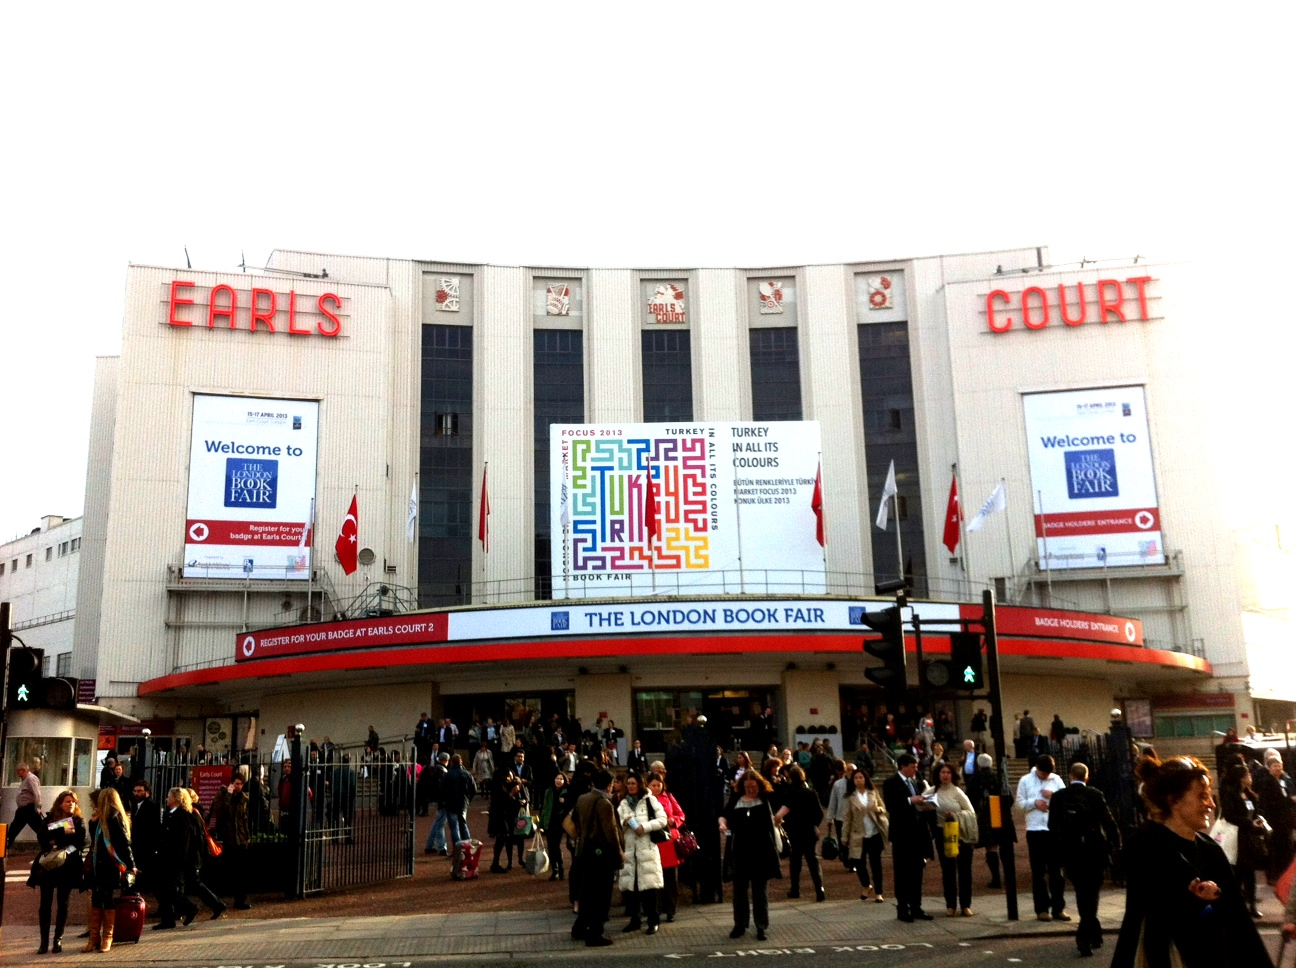 Outside the London Book Fair at Earl's Court